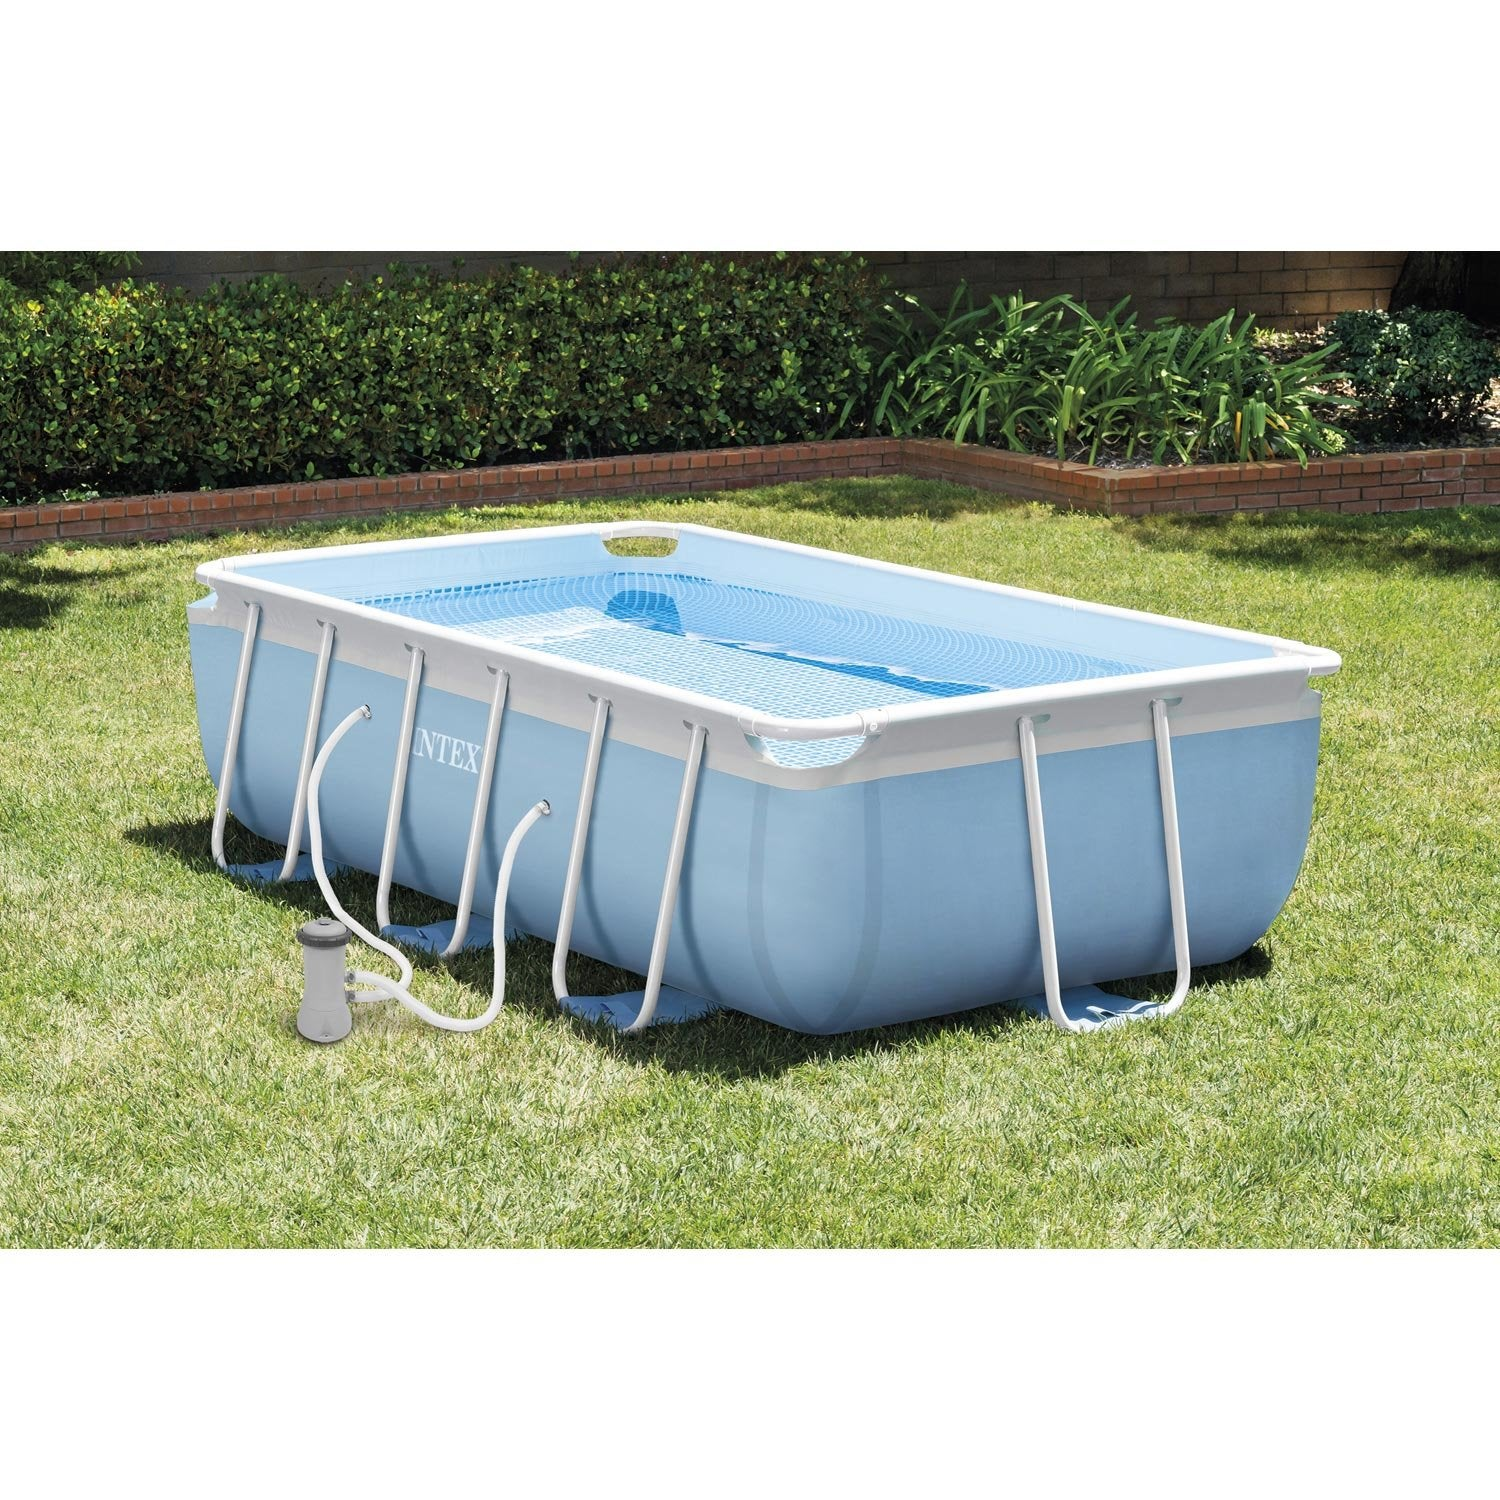 Piscine hors sol autoportante tubulaire intex l 3 4 x l 2 for Piscine 2x3